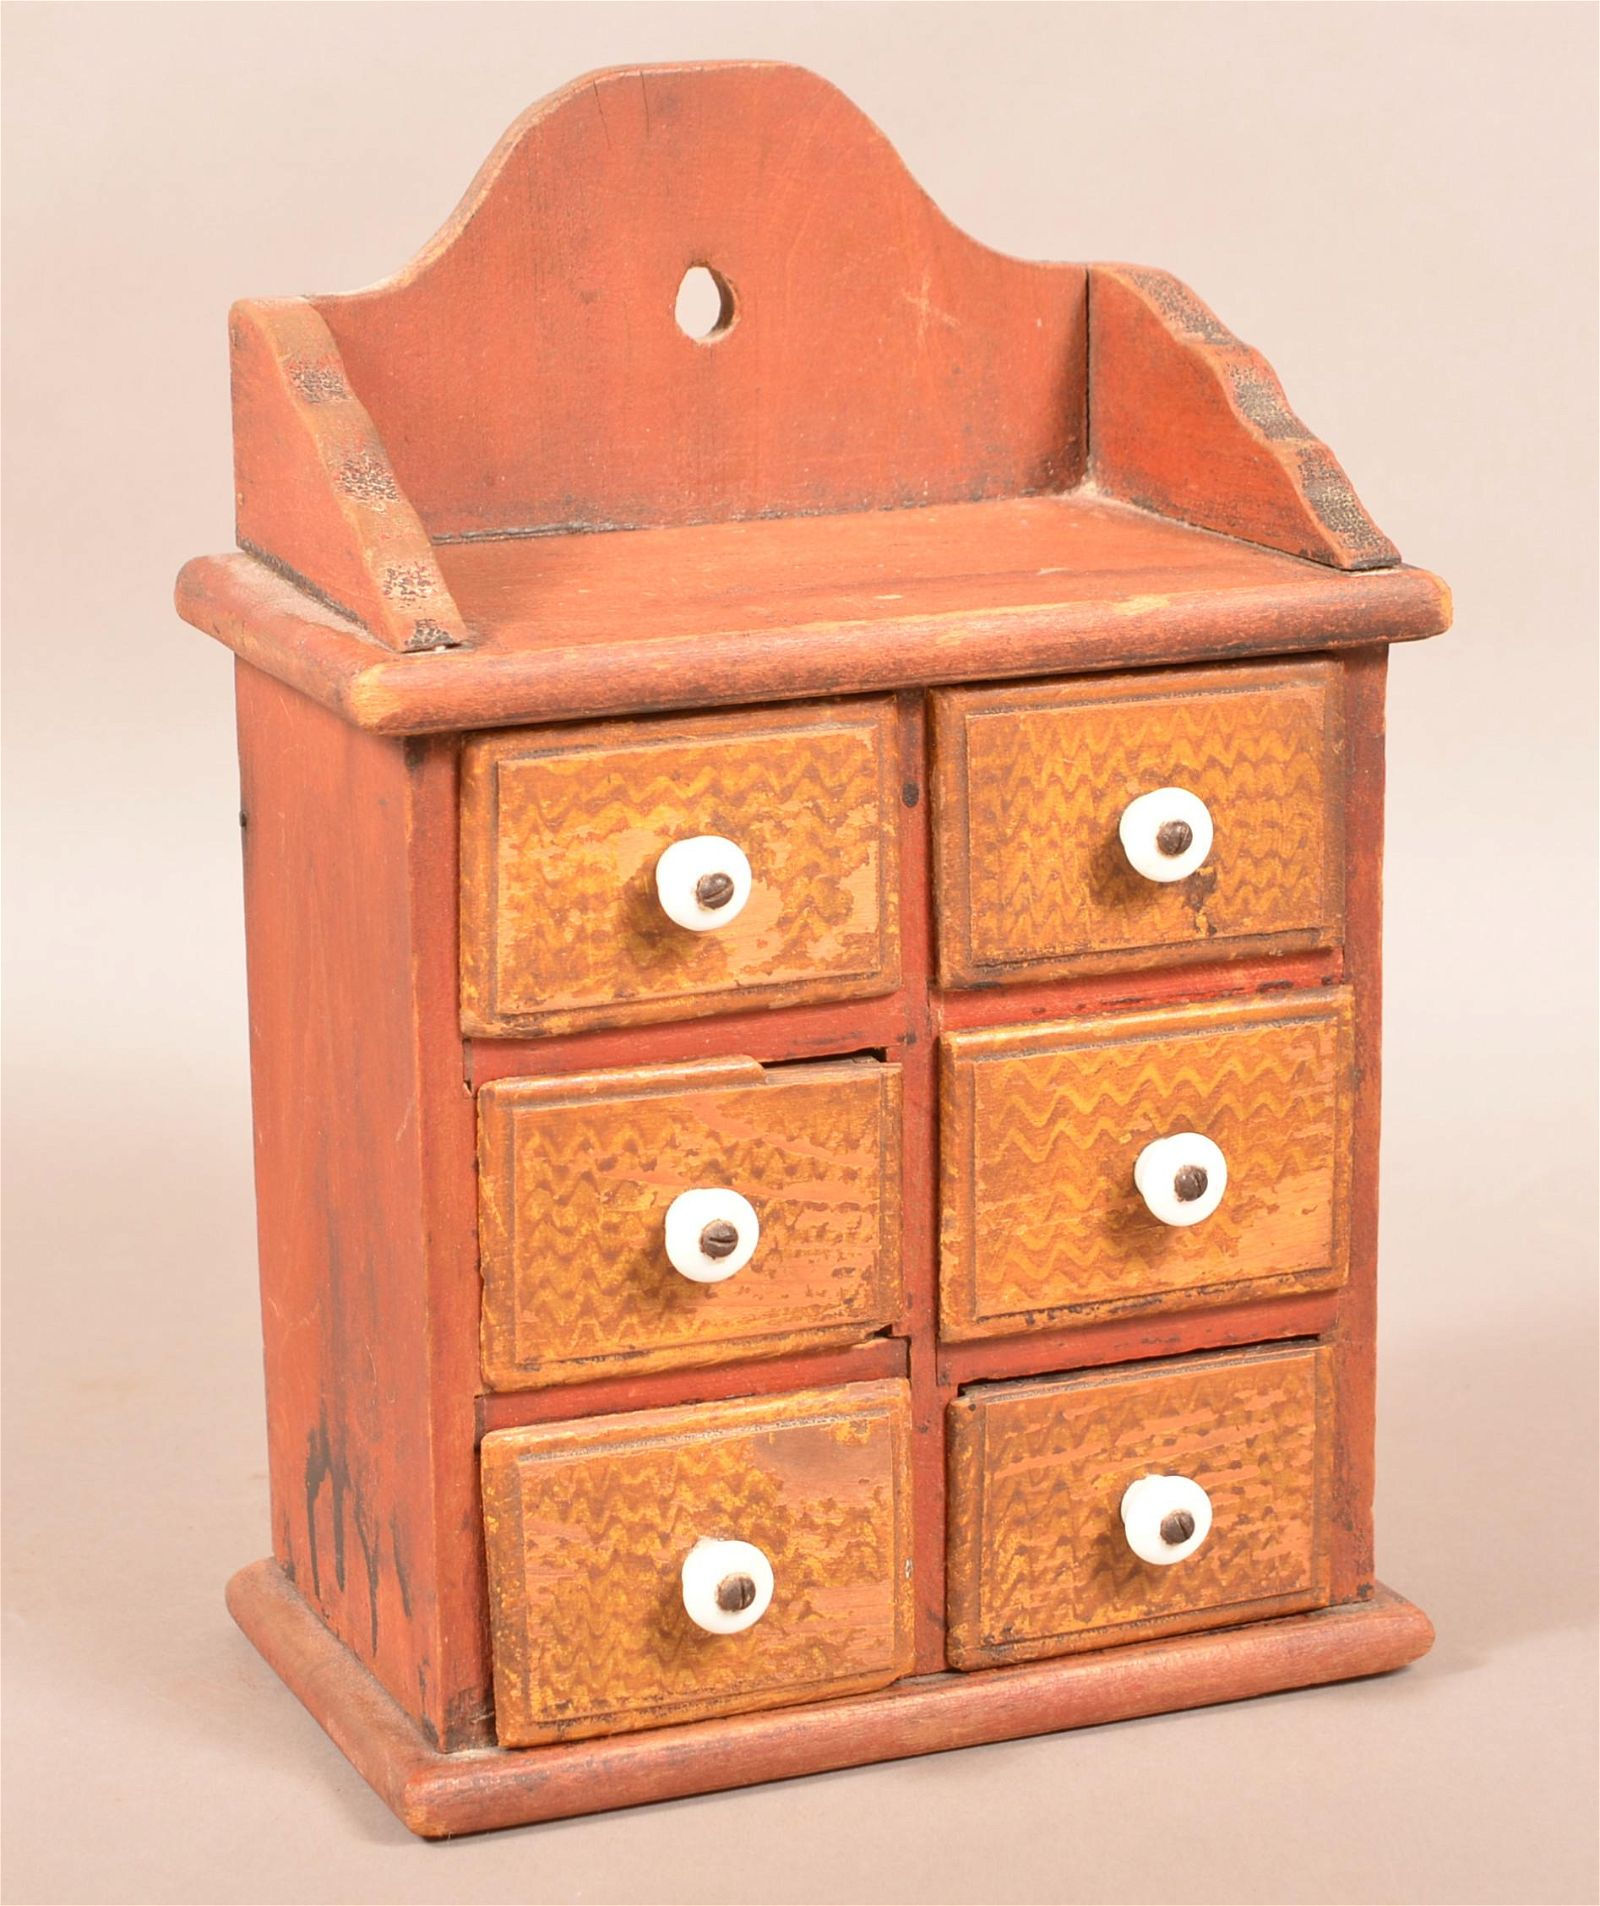 Paint-Decorated Seed Box Attributed to Henry Lapp.